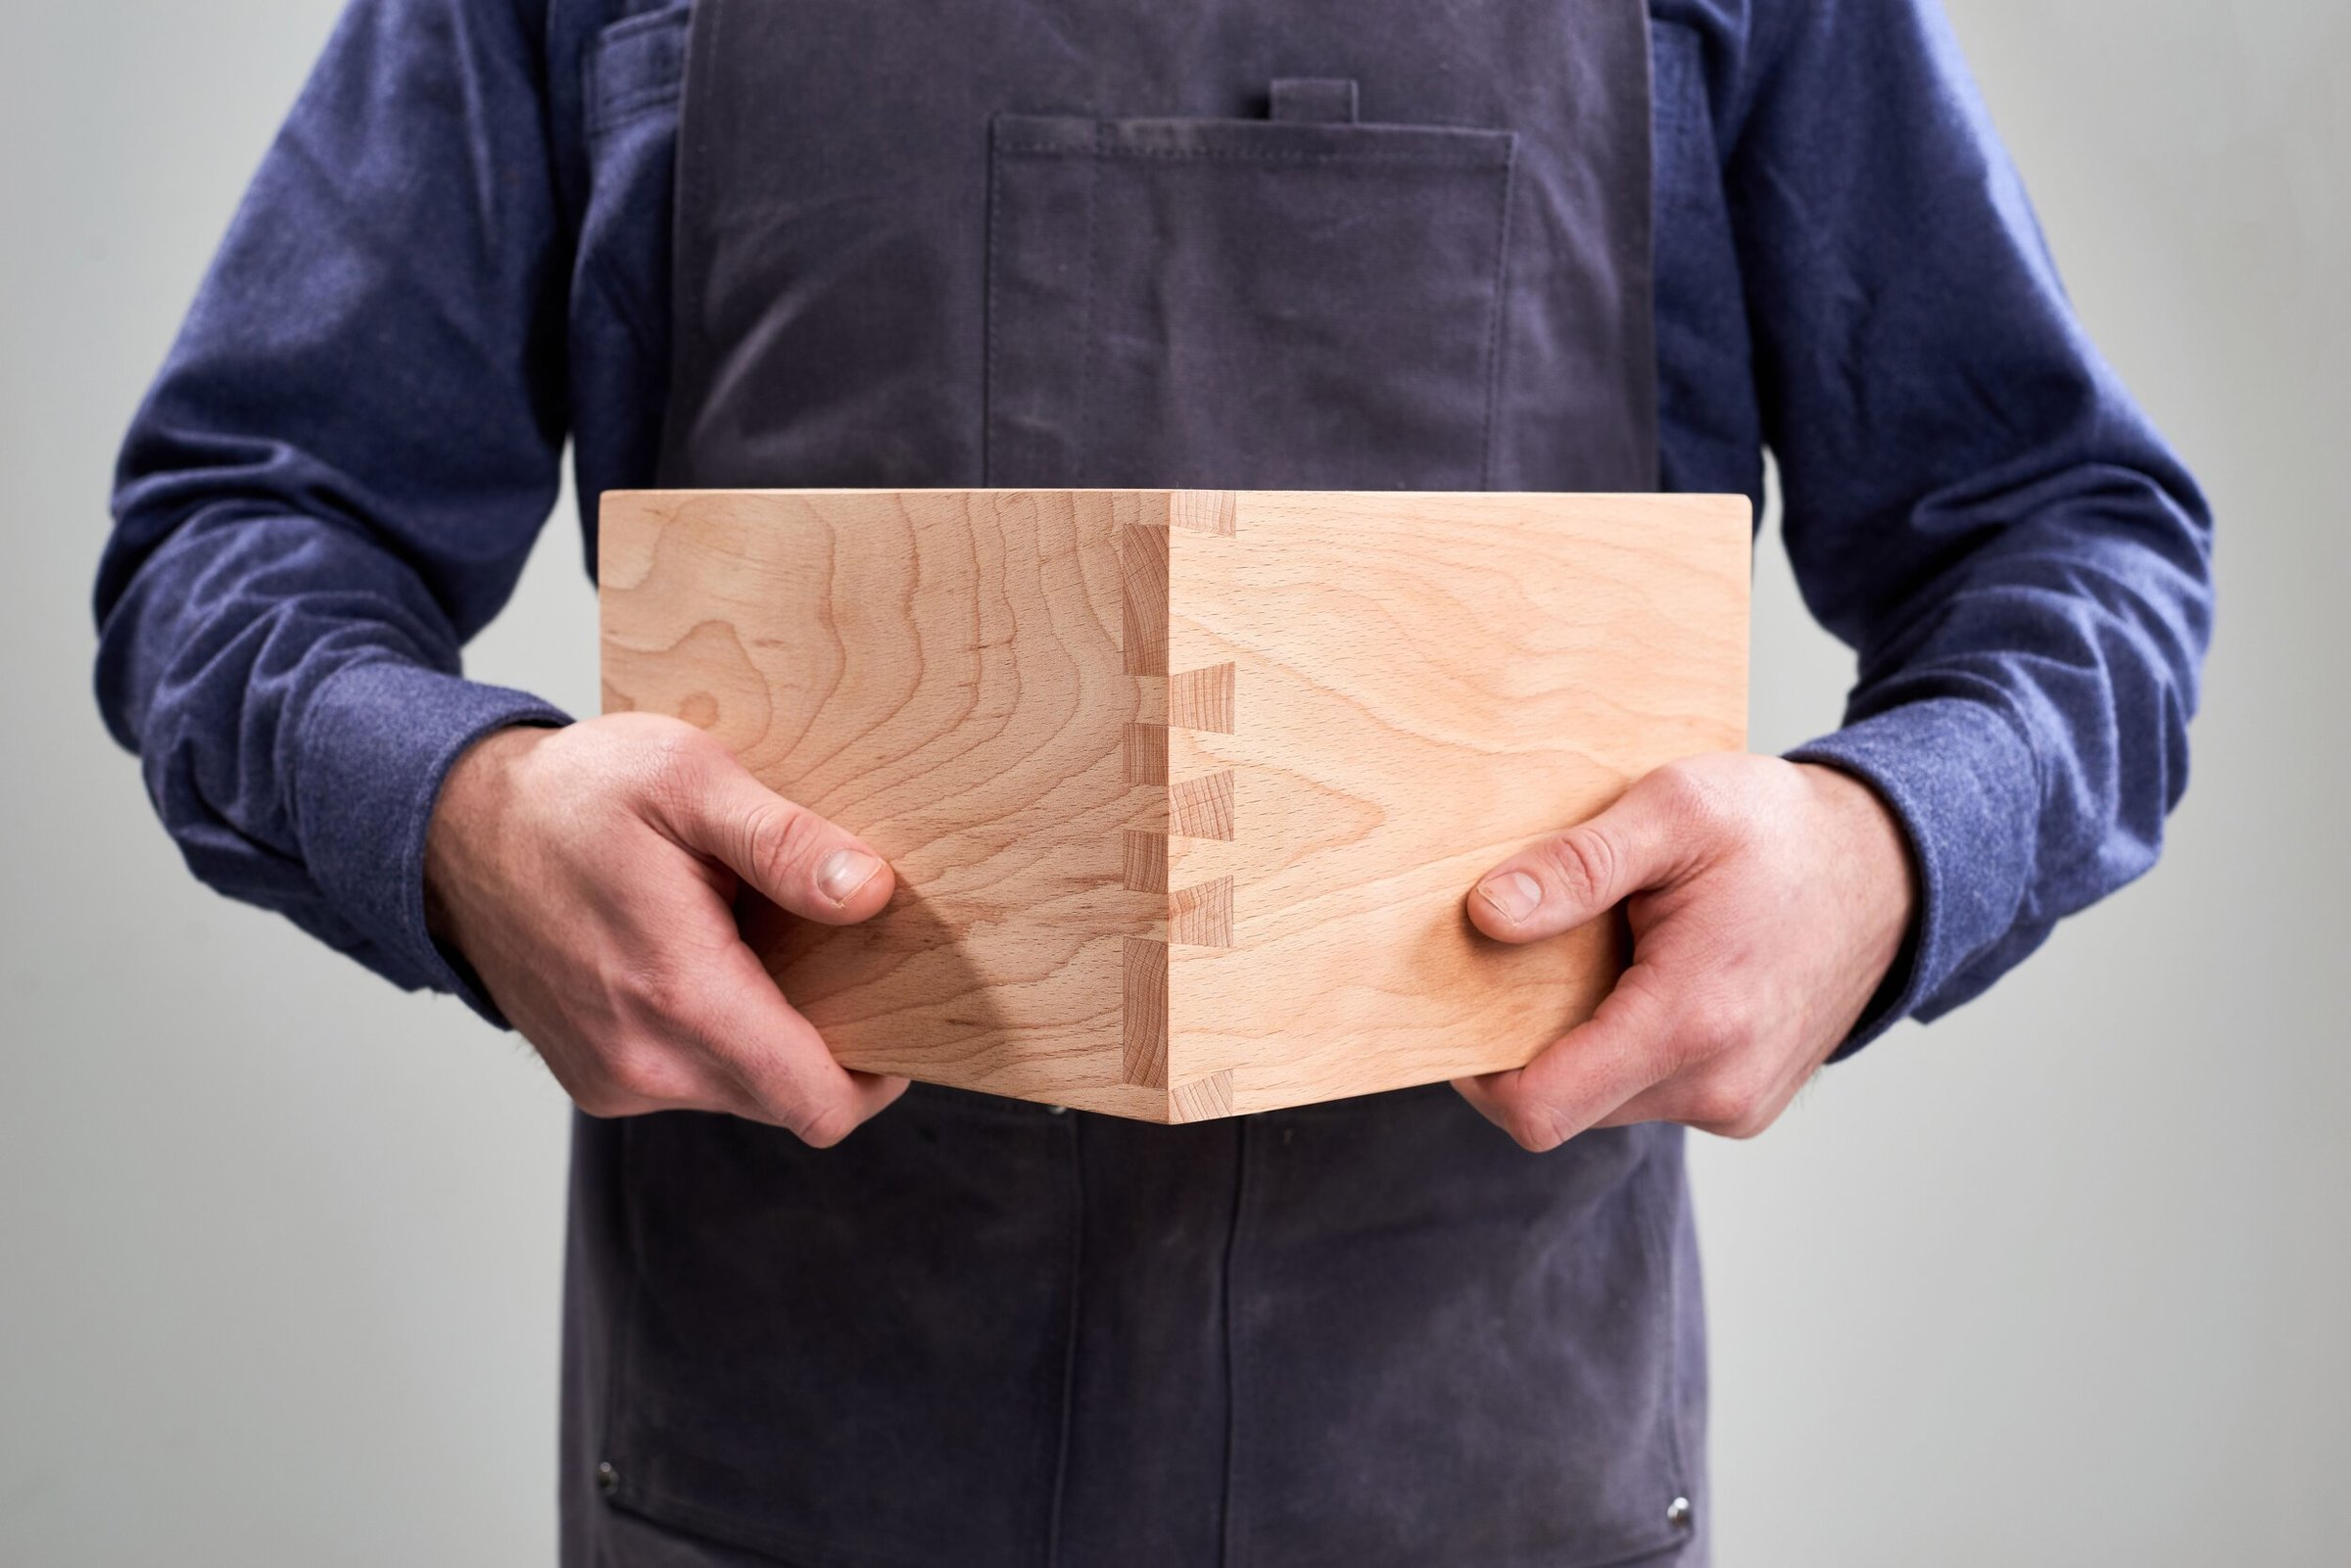 Joinery_0331+reduced+file+size.jpg